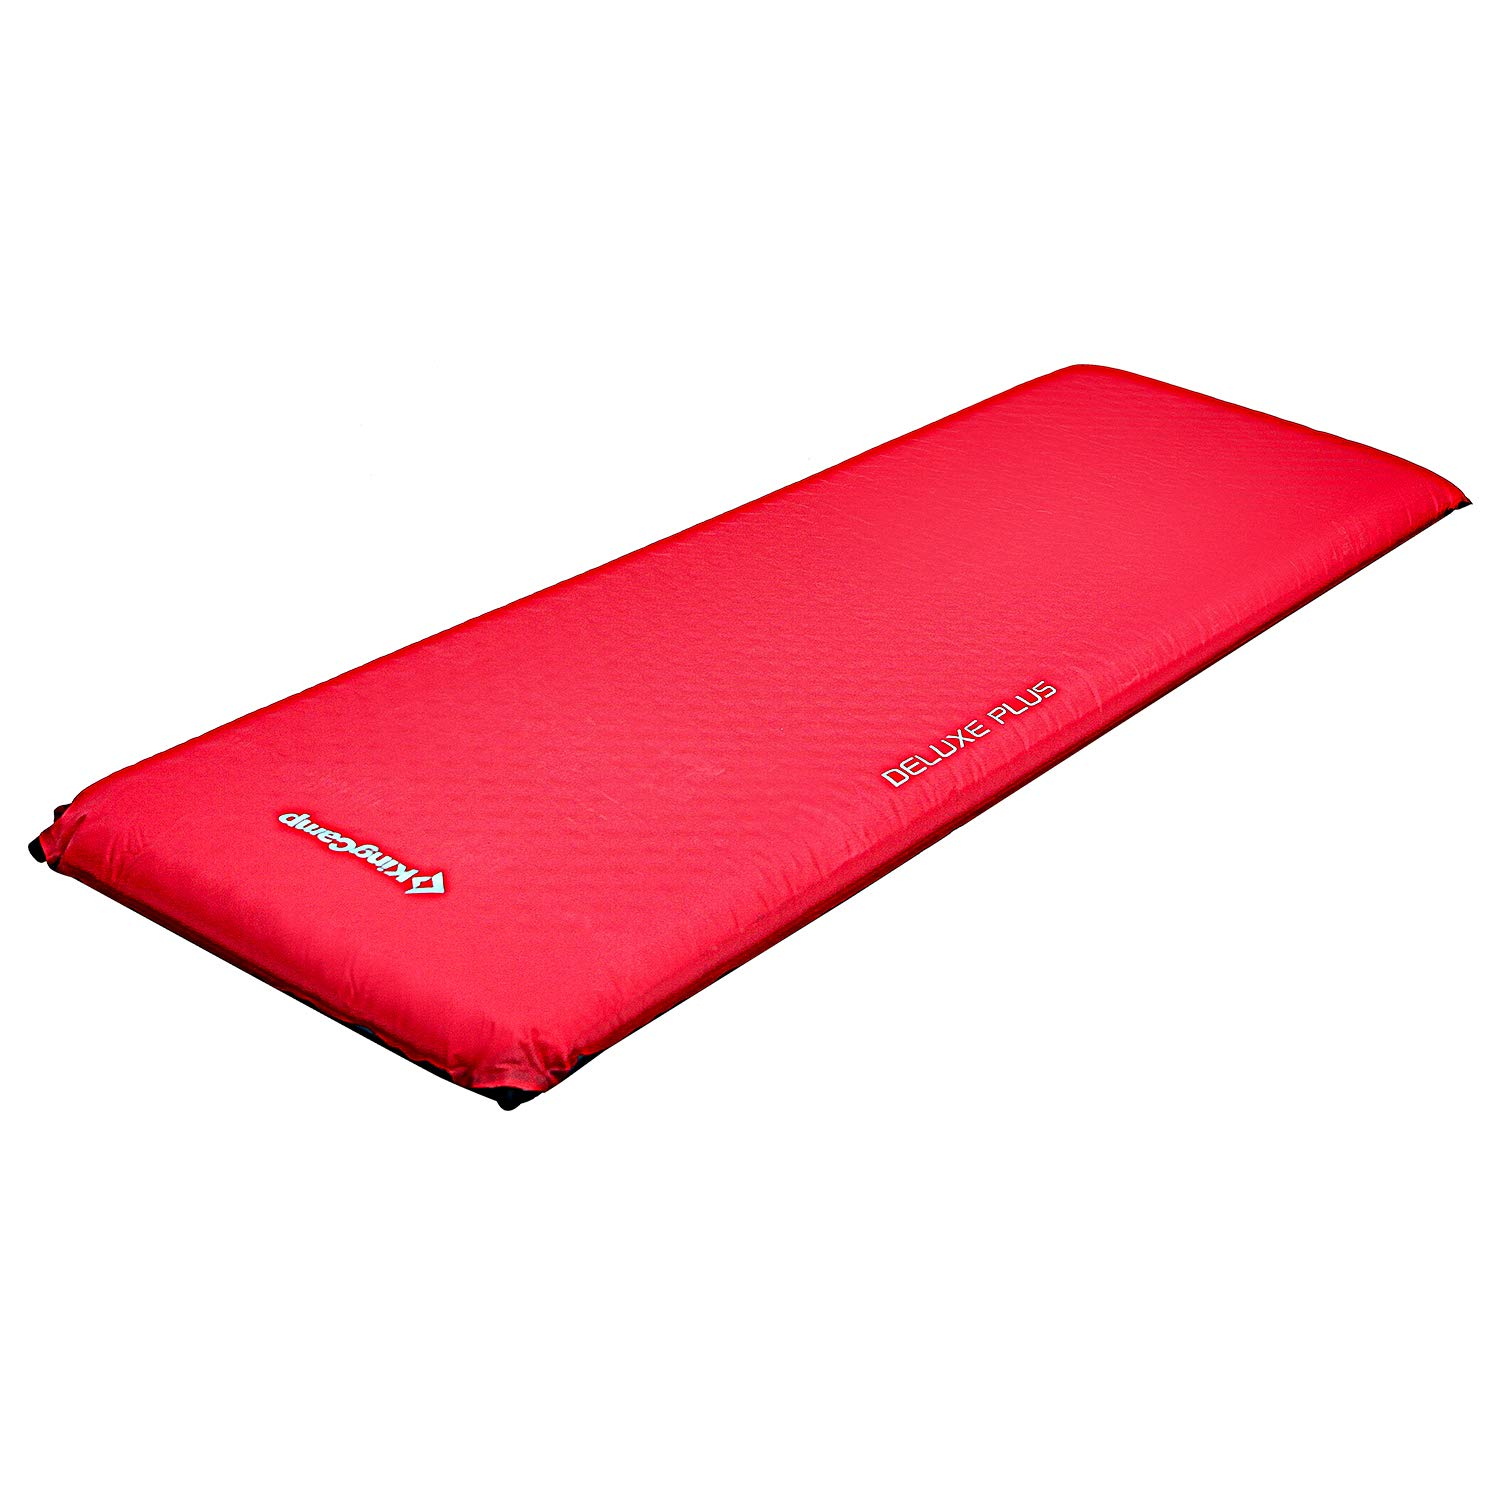 KingCamp Camping Sleeping Pad Foam Mat Mattress - Deluxe Plus Self Inflating 4 inches Thick Pad with Carry Bag, Suitable for Traveling Hiking Family Camping Outdoor Activities